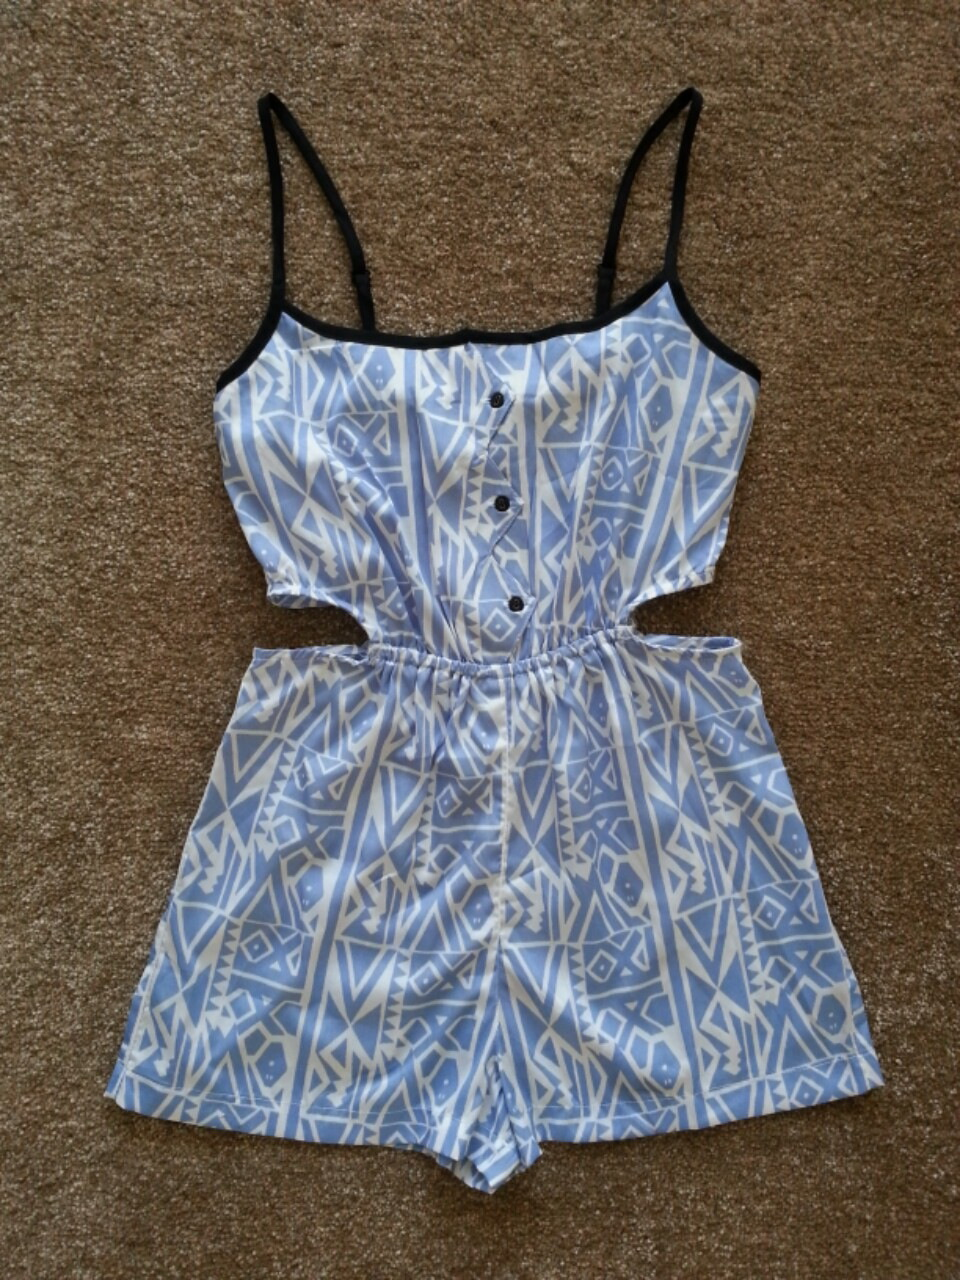 River island Playsuit Size S